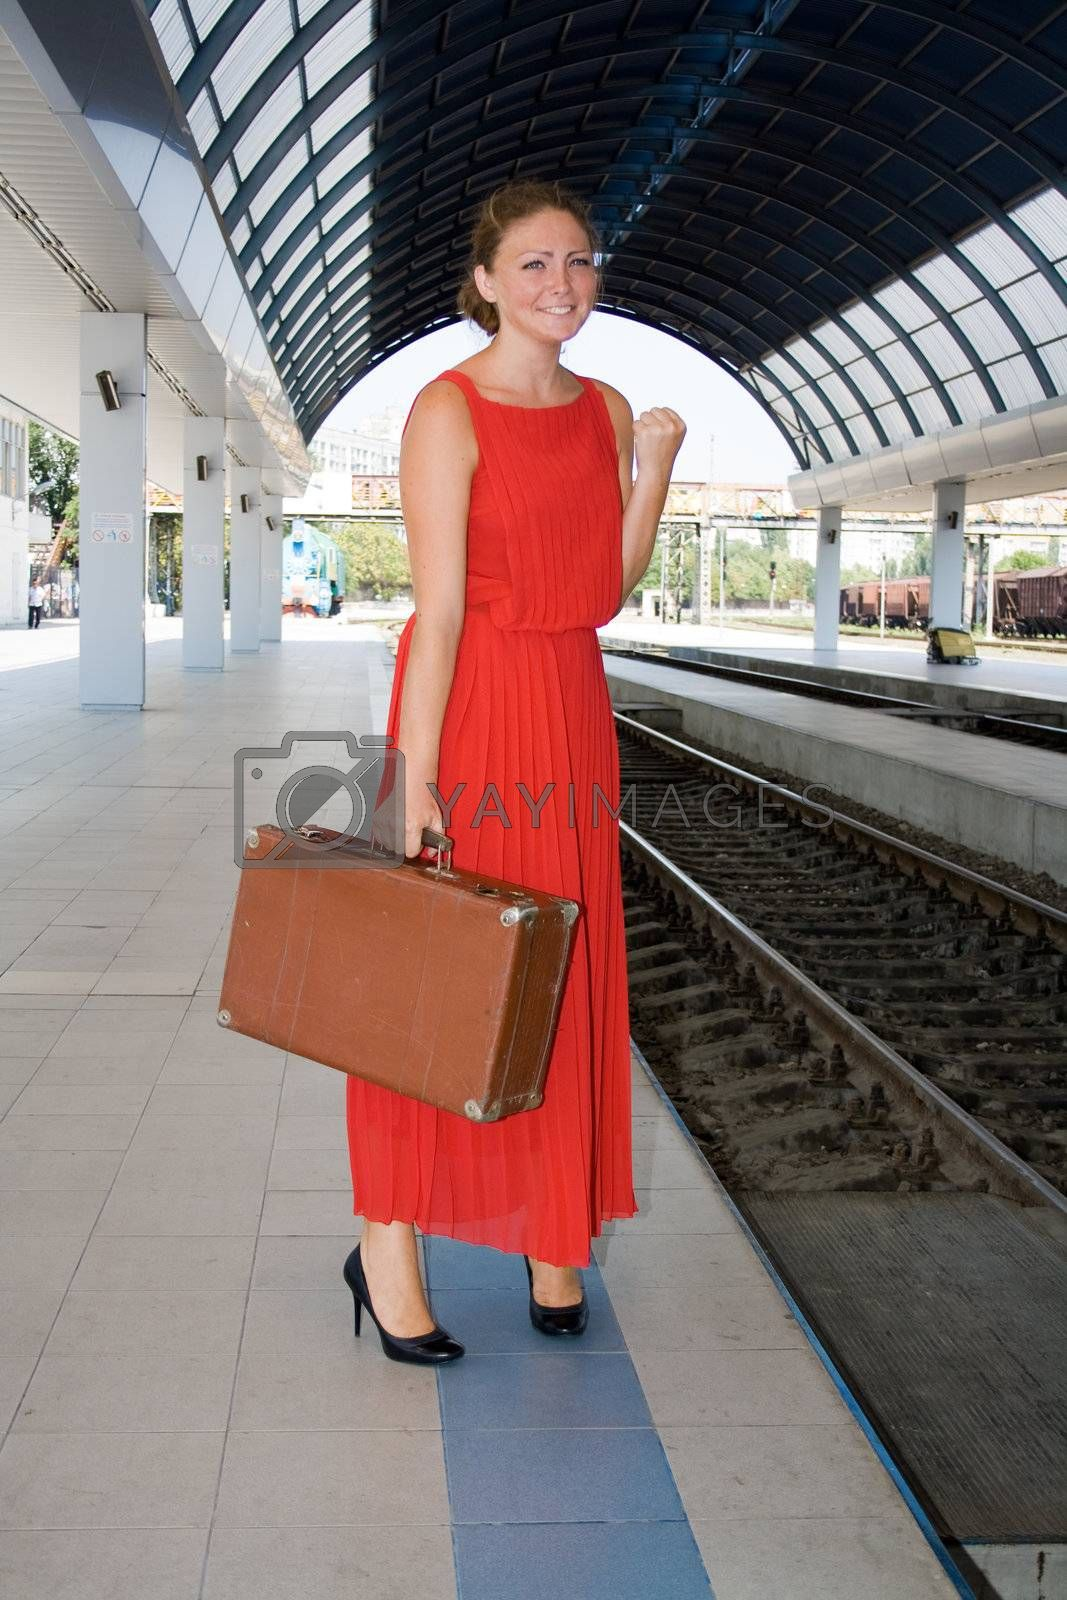 Offended by a woman with a suitcase in his hand too late for the train